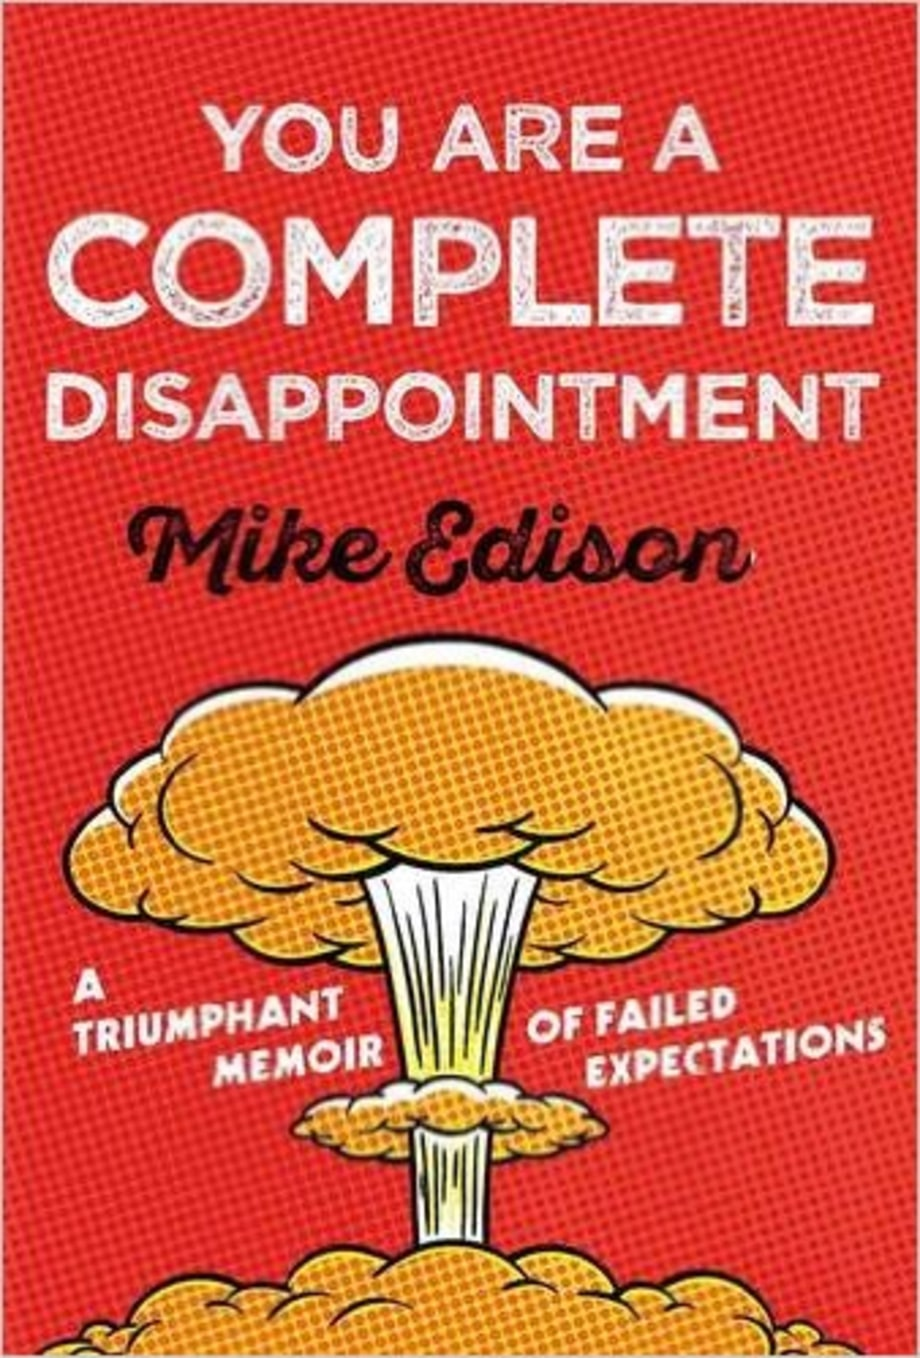 You Are a Complete Disappointment: A Triumphant Memoir of Failed Expectations, Mike Edison